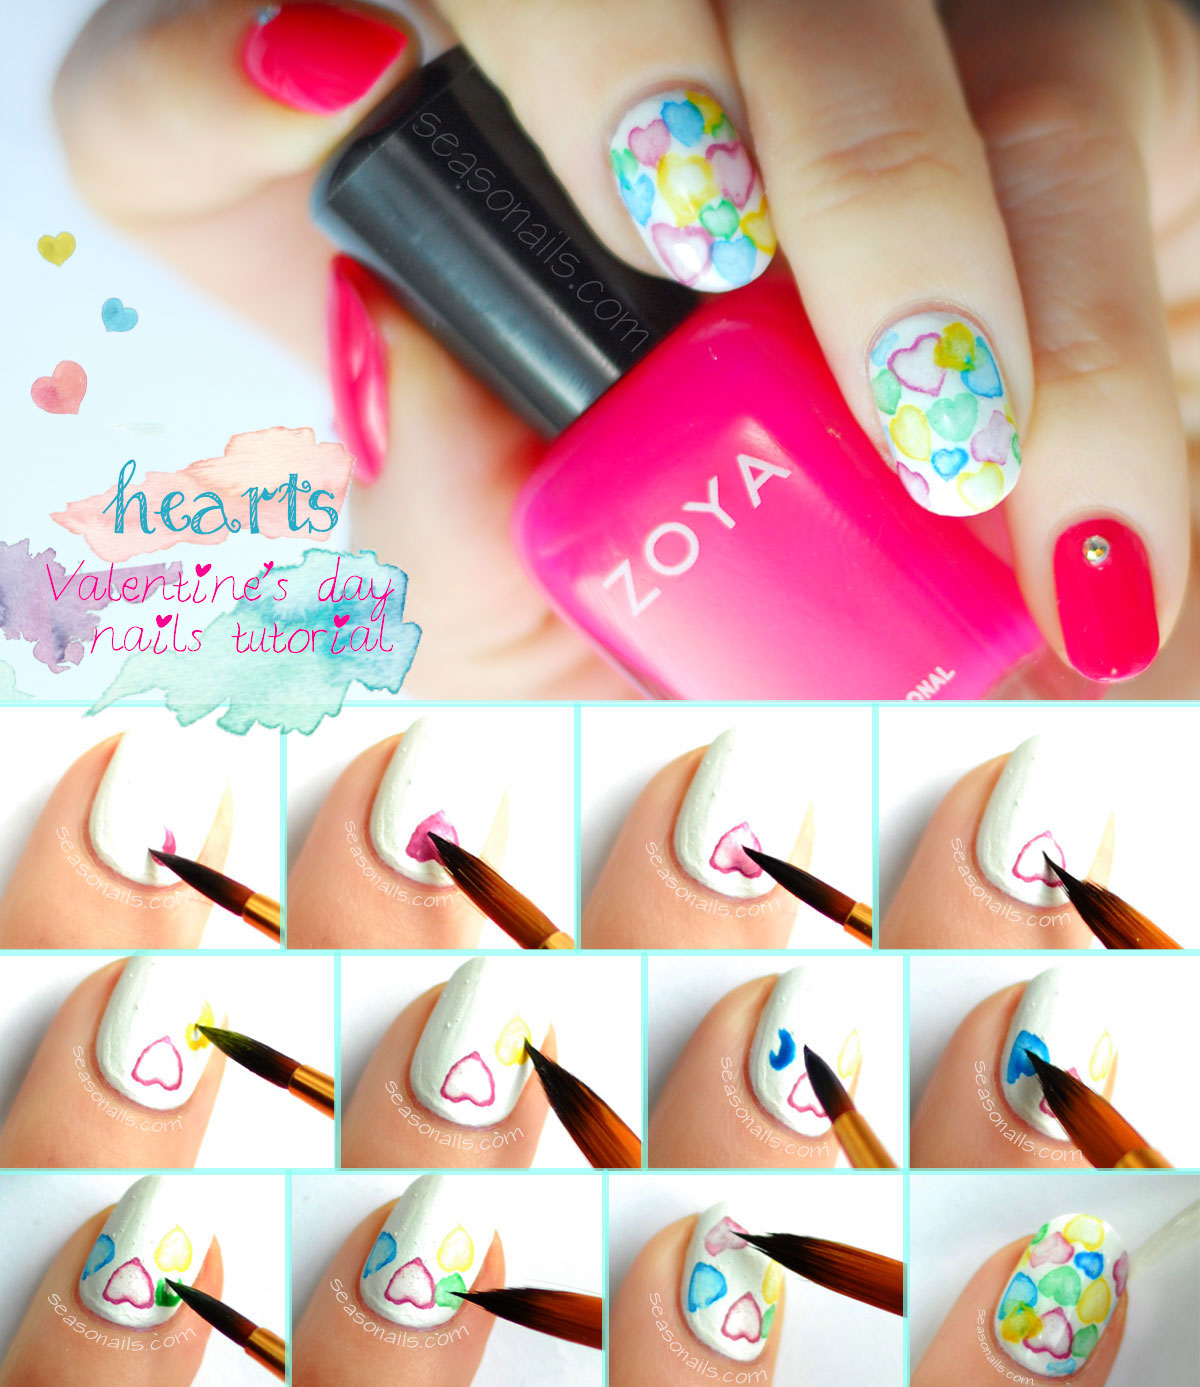 watercolor hearts valentines day nails tutorial